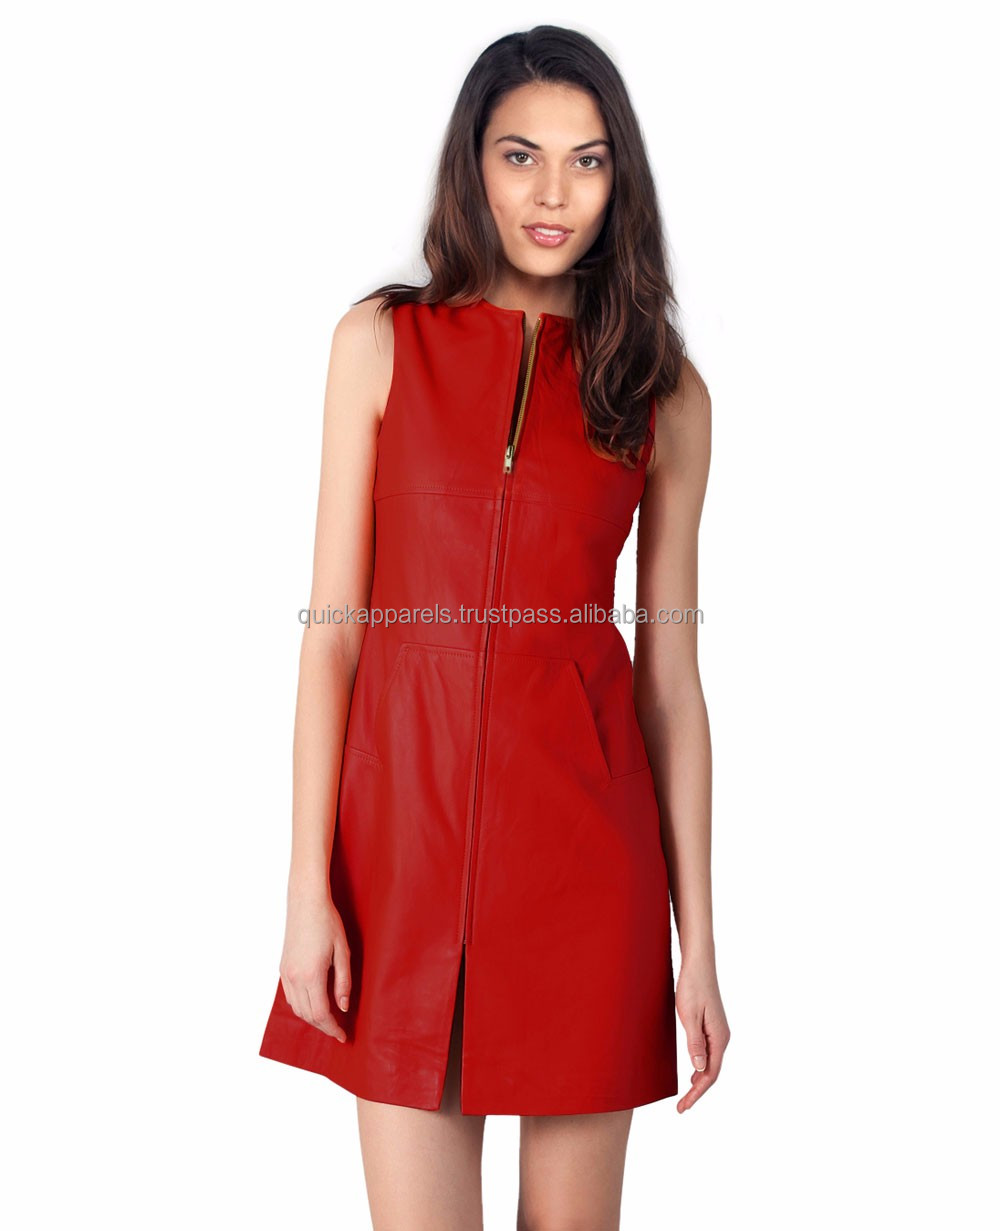 Custom made western style sleeveless plain sexy metal buckle fancy suede dress for women